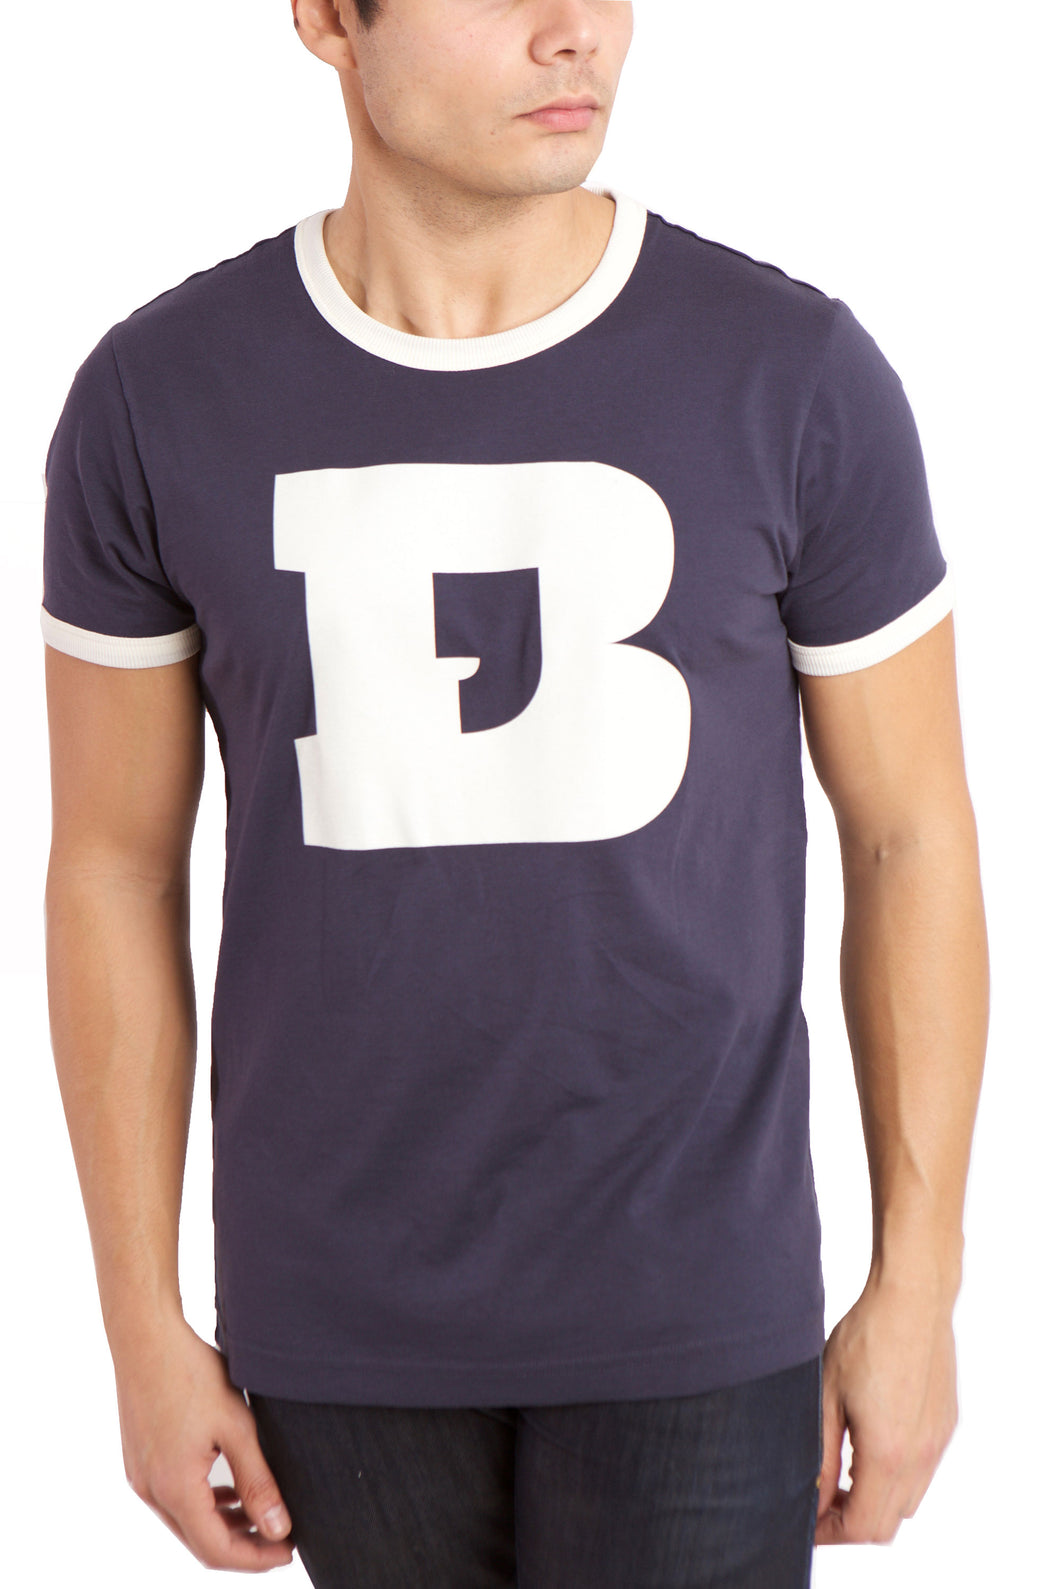 Men's ringer t-shirt in navy with white collar and arm ringer.  Large graphic on front of B with the hollow interior formed as a comma.